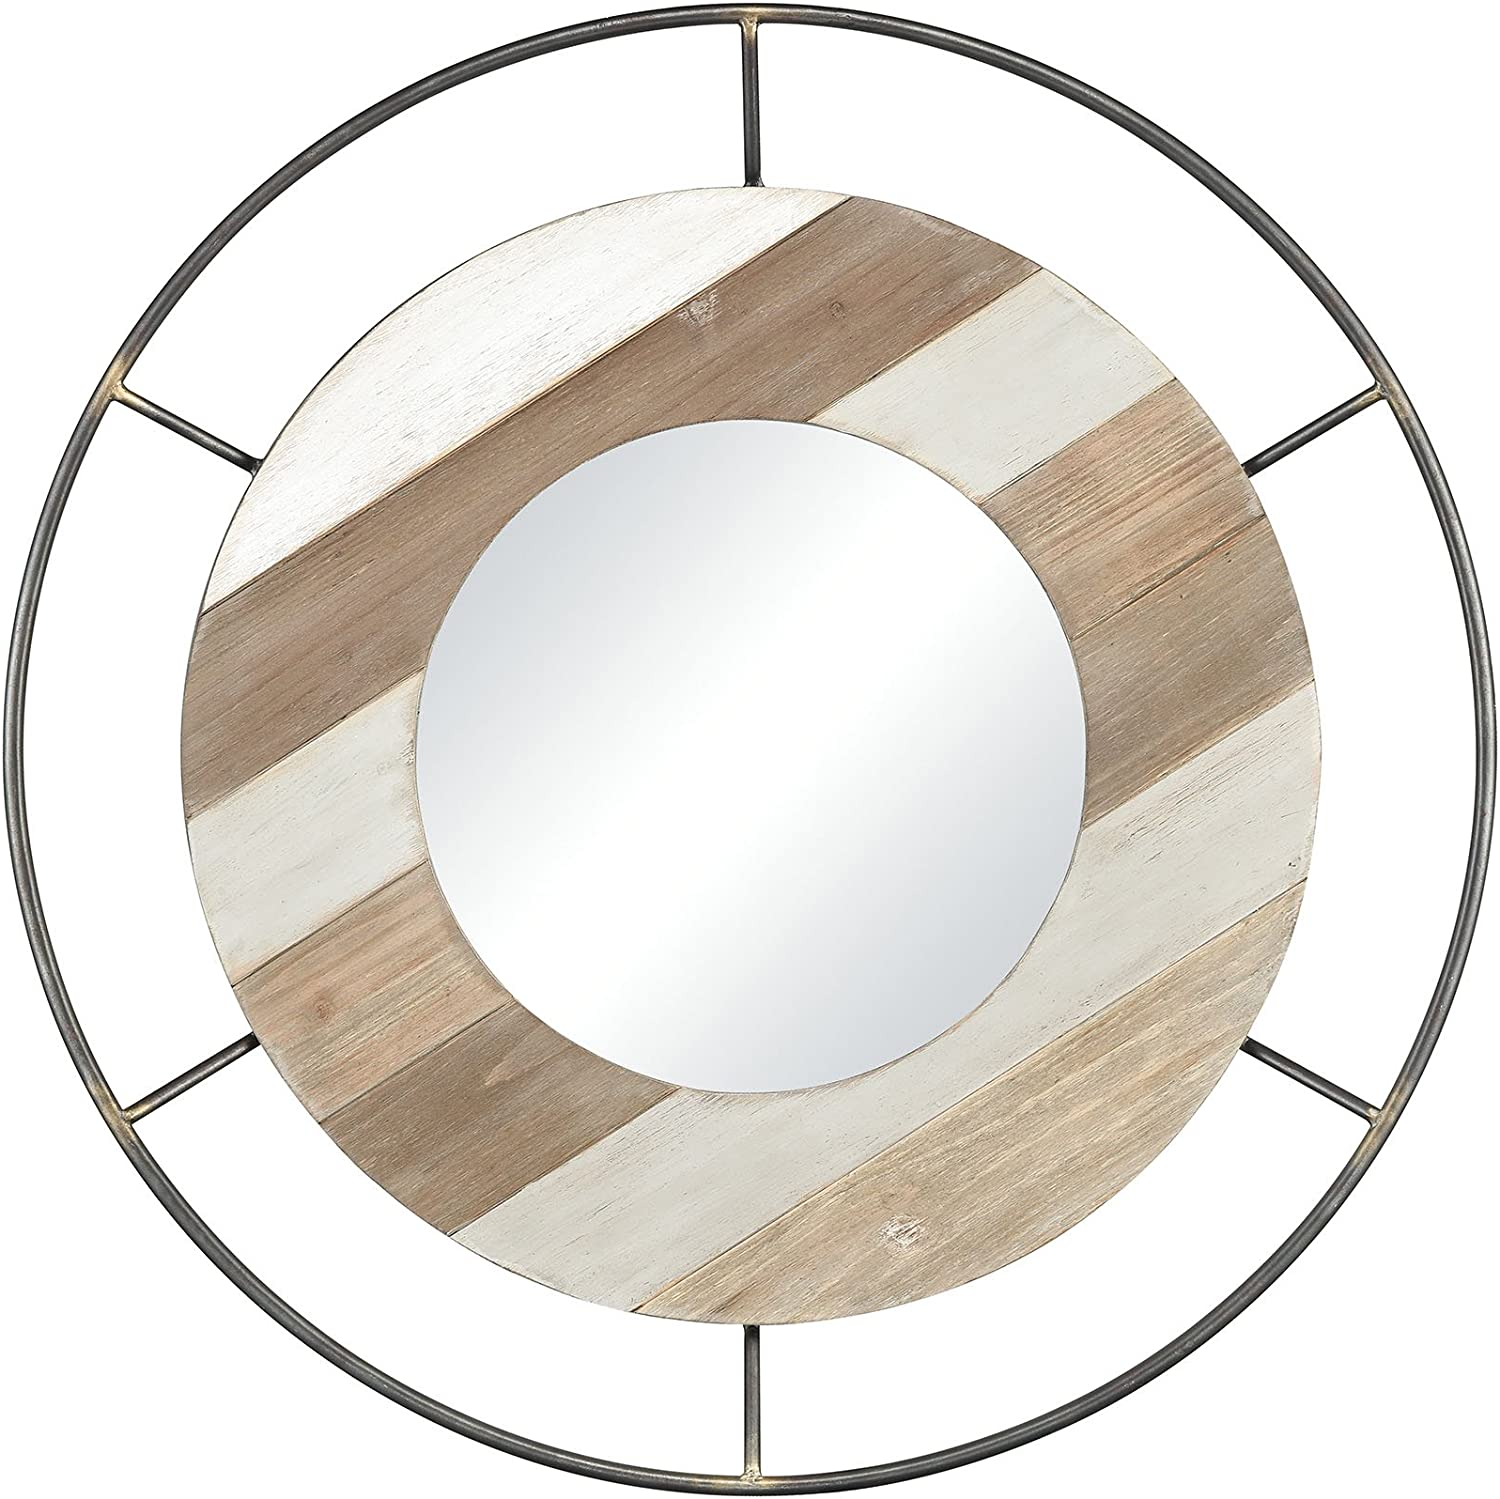 ELK Sonora Wall Mirror, Wood Tone